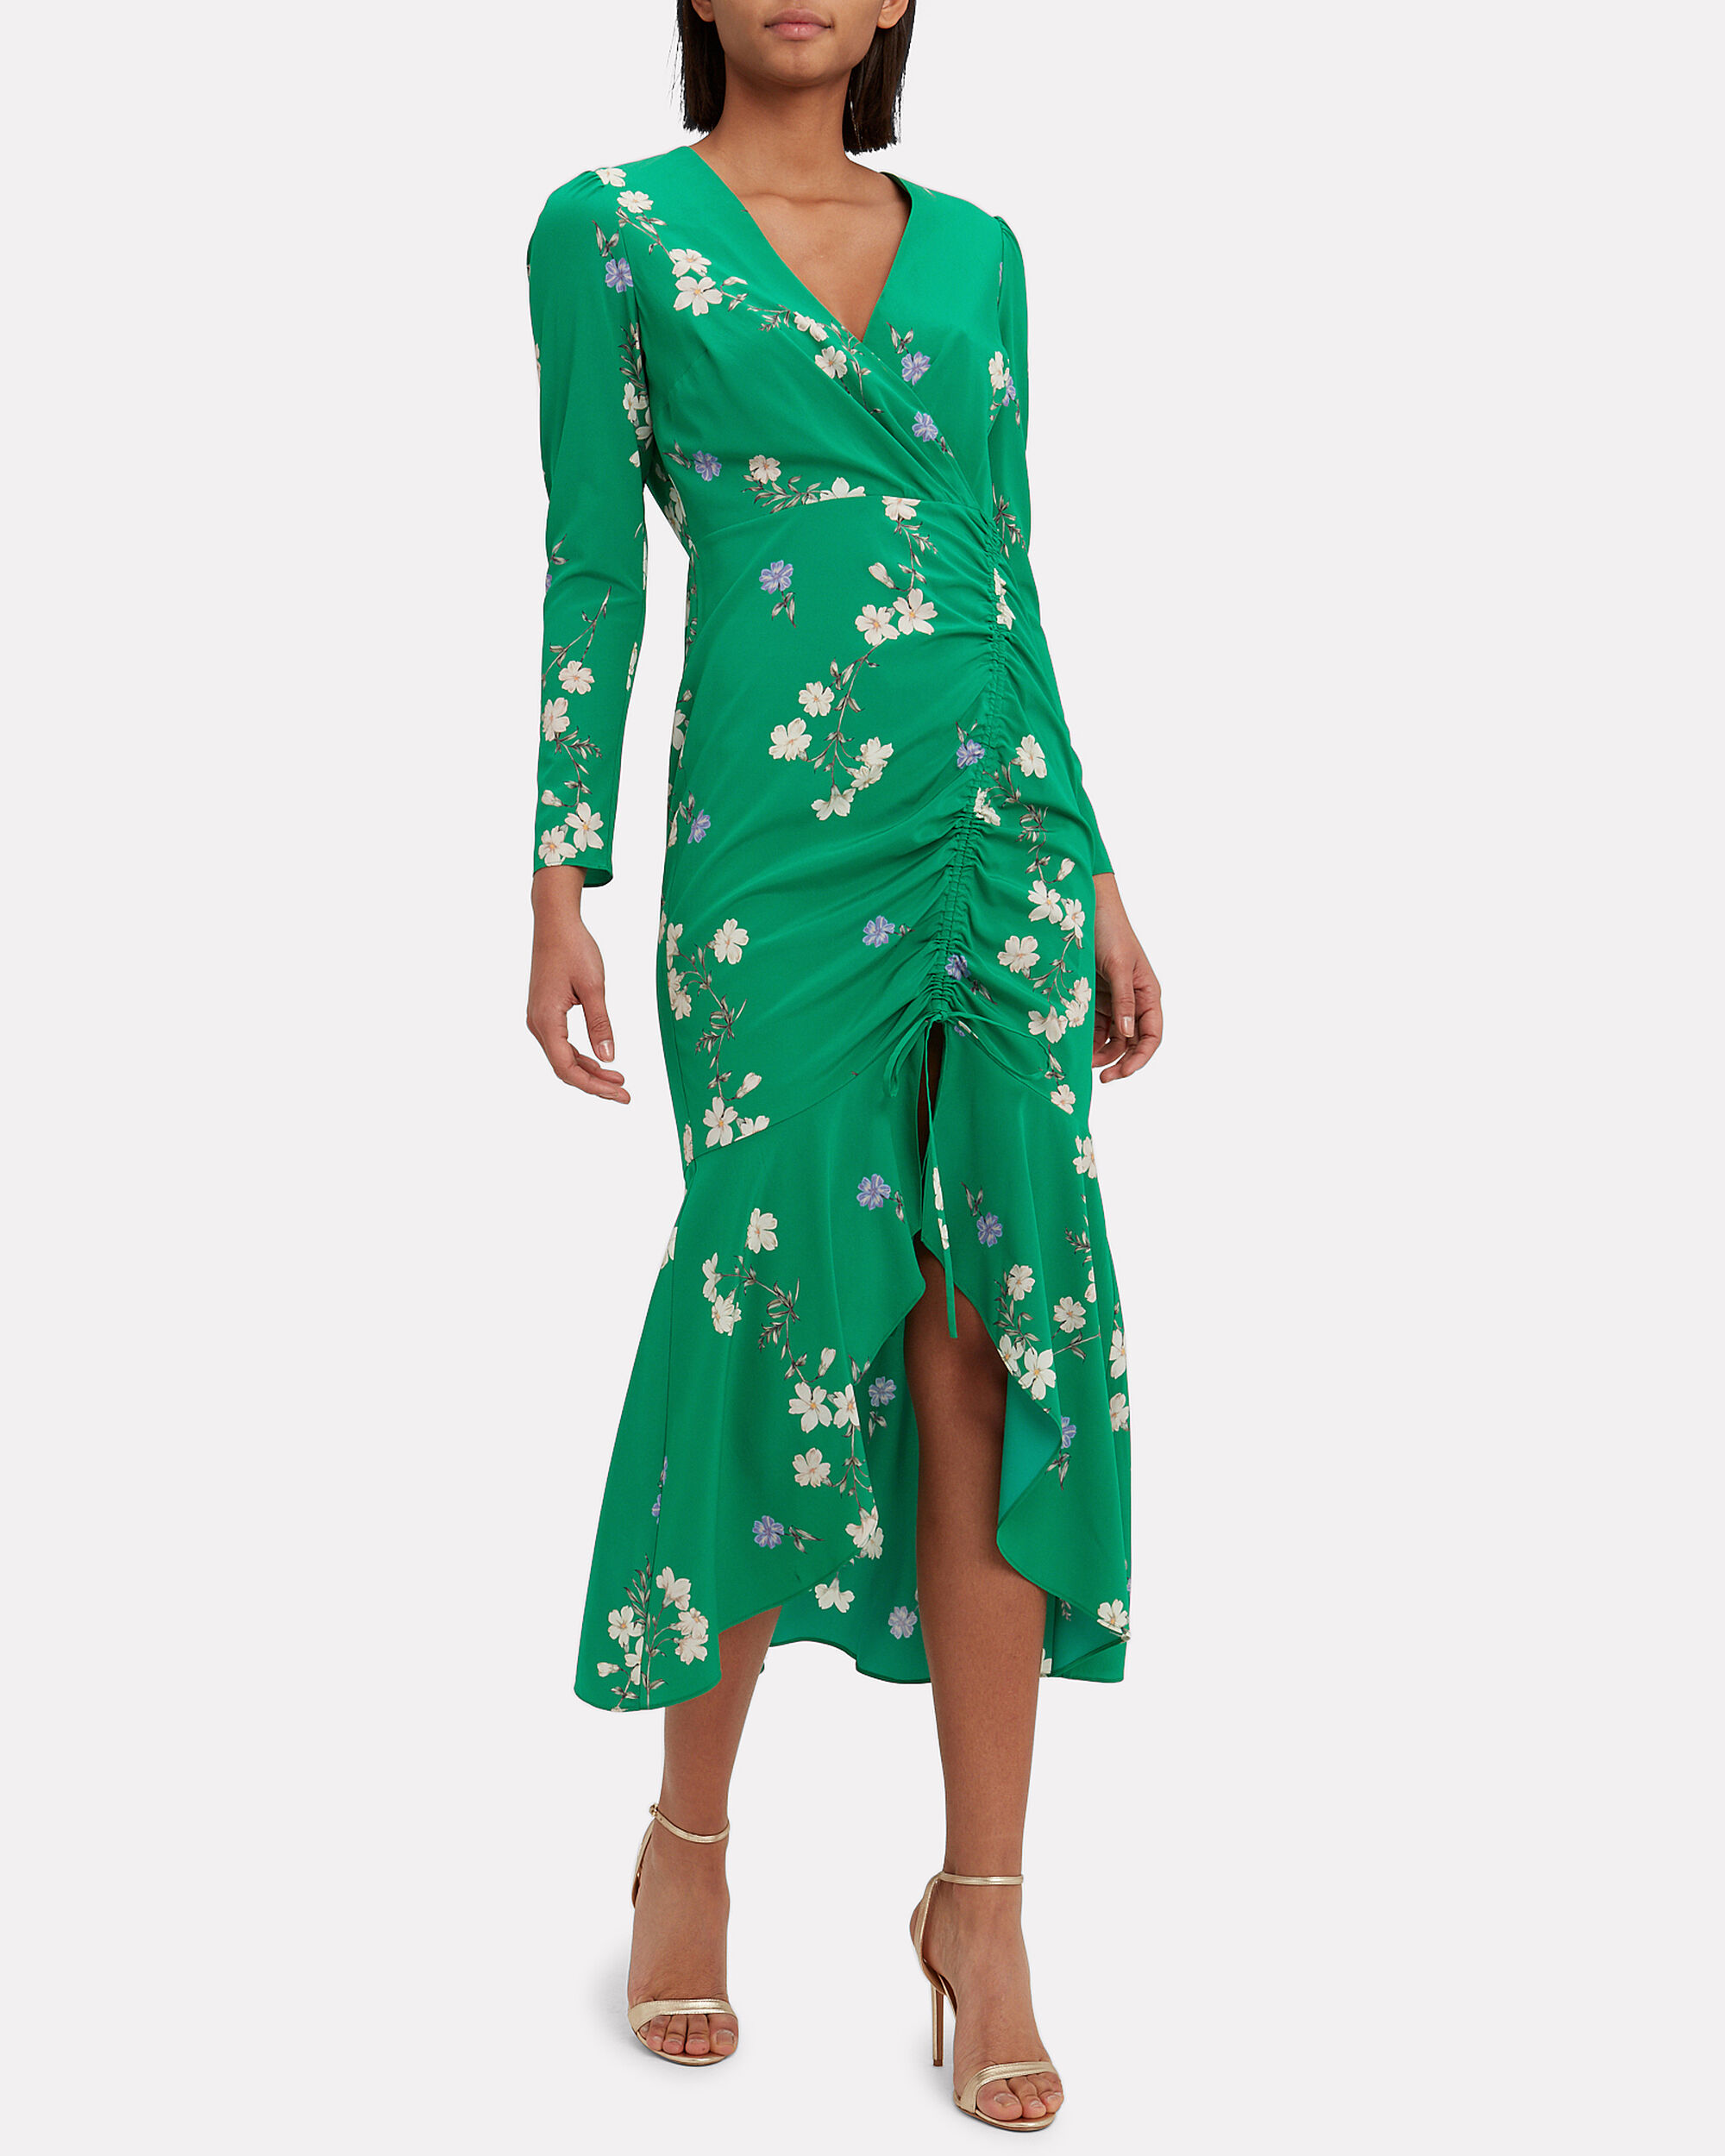 Aria Floral Printed Dress, GREEN, hi-res